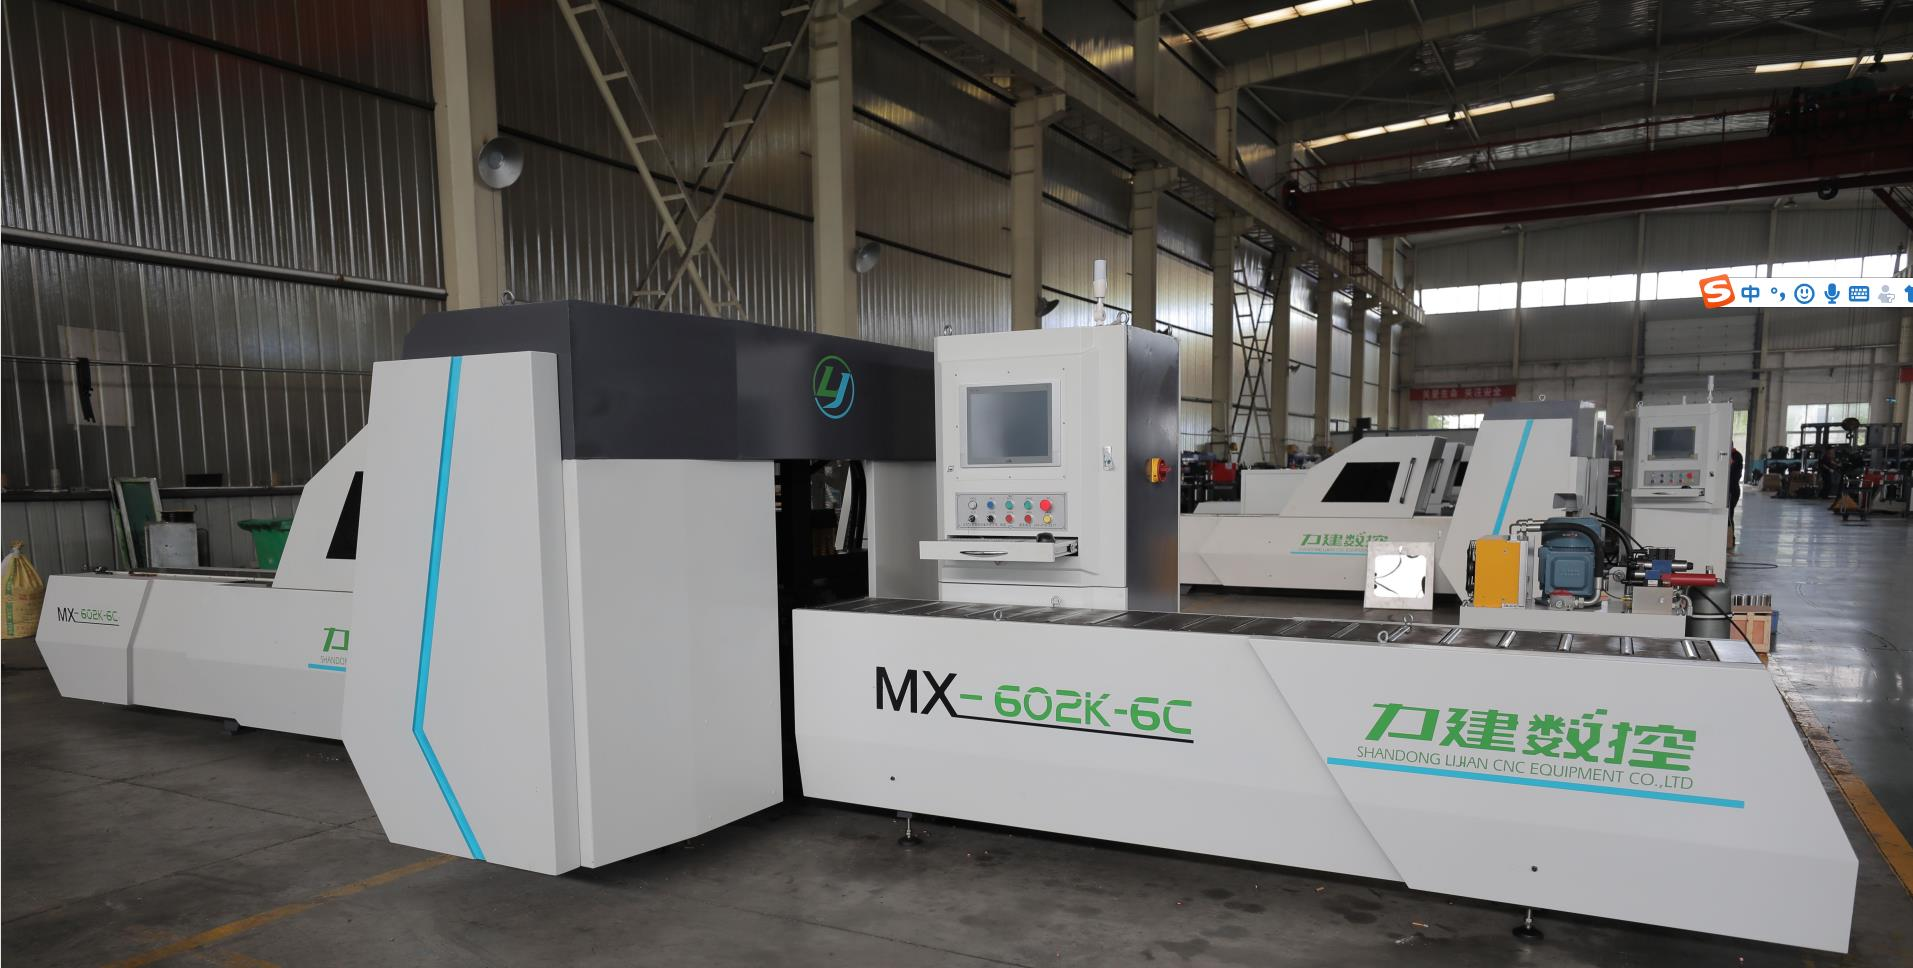 MX402K-7C Punzonadoras CNC cutting machine por conducto de barra de cobre